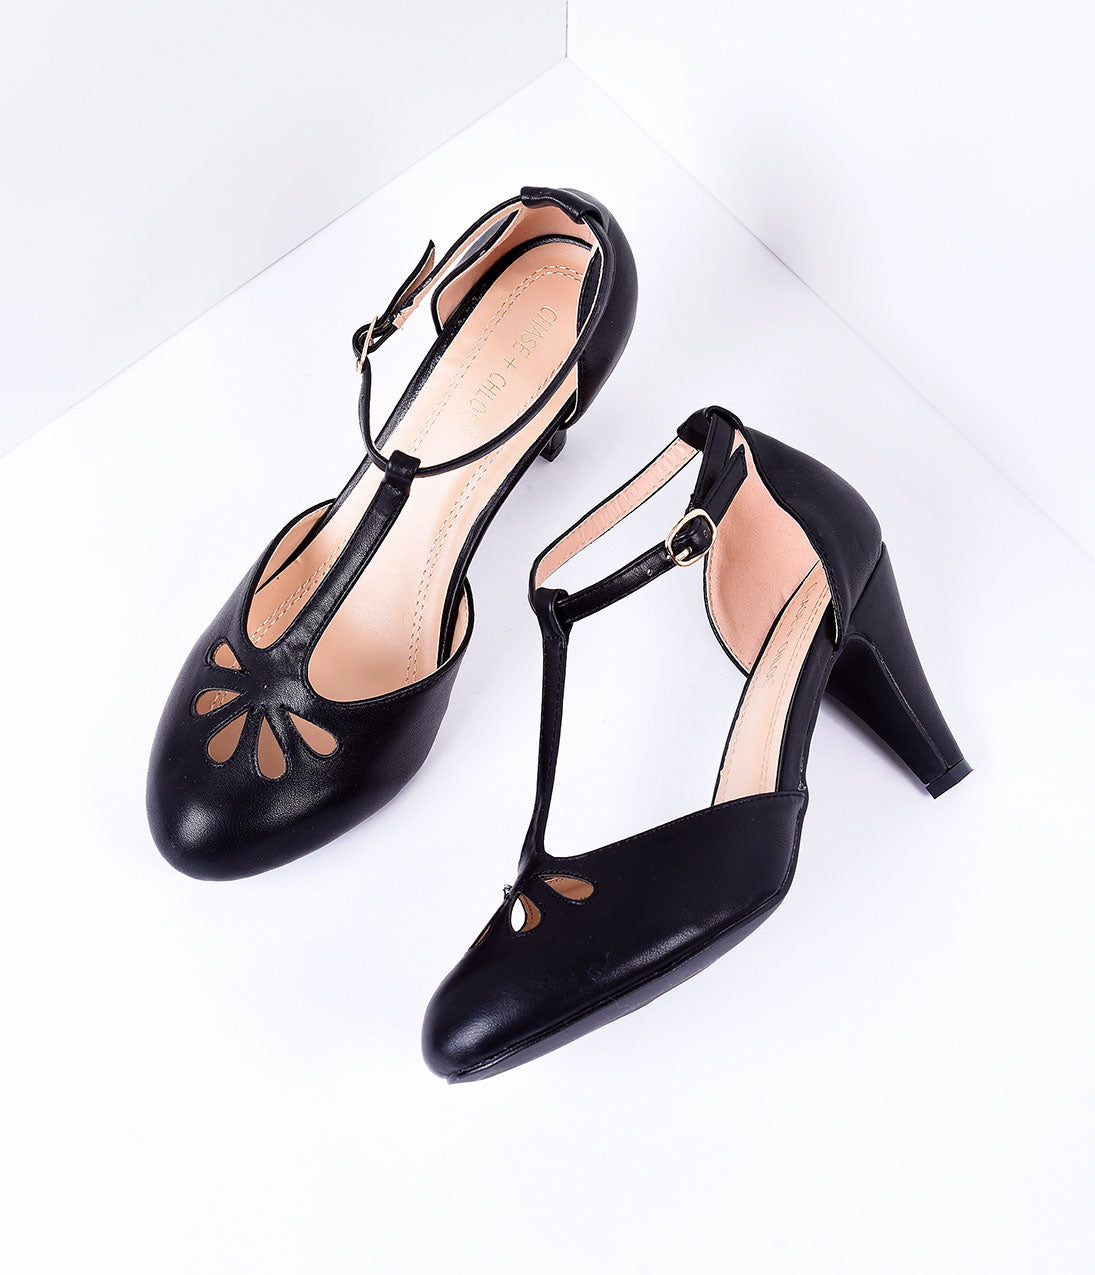 Vintage Style Shoes, Vintage Inspired Shoes Black Pleather Cutout Kimmy T-Strap Heels $44.00 AT vintagedancer.com